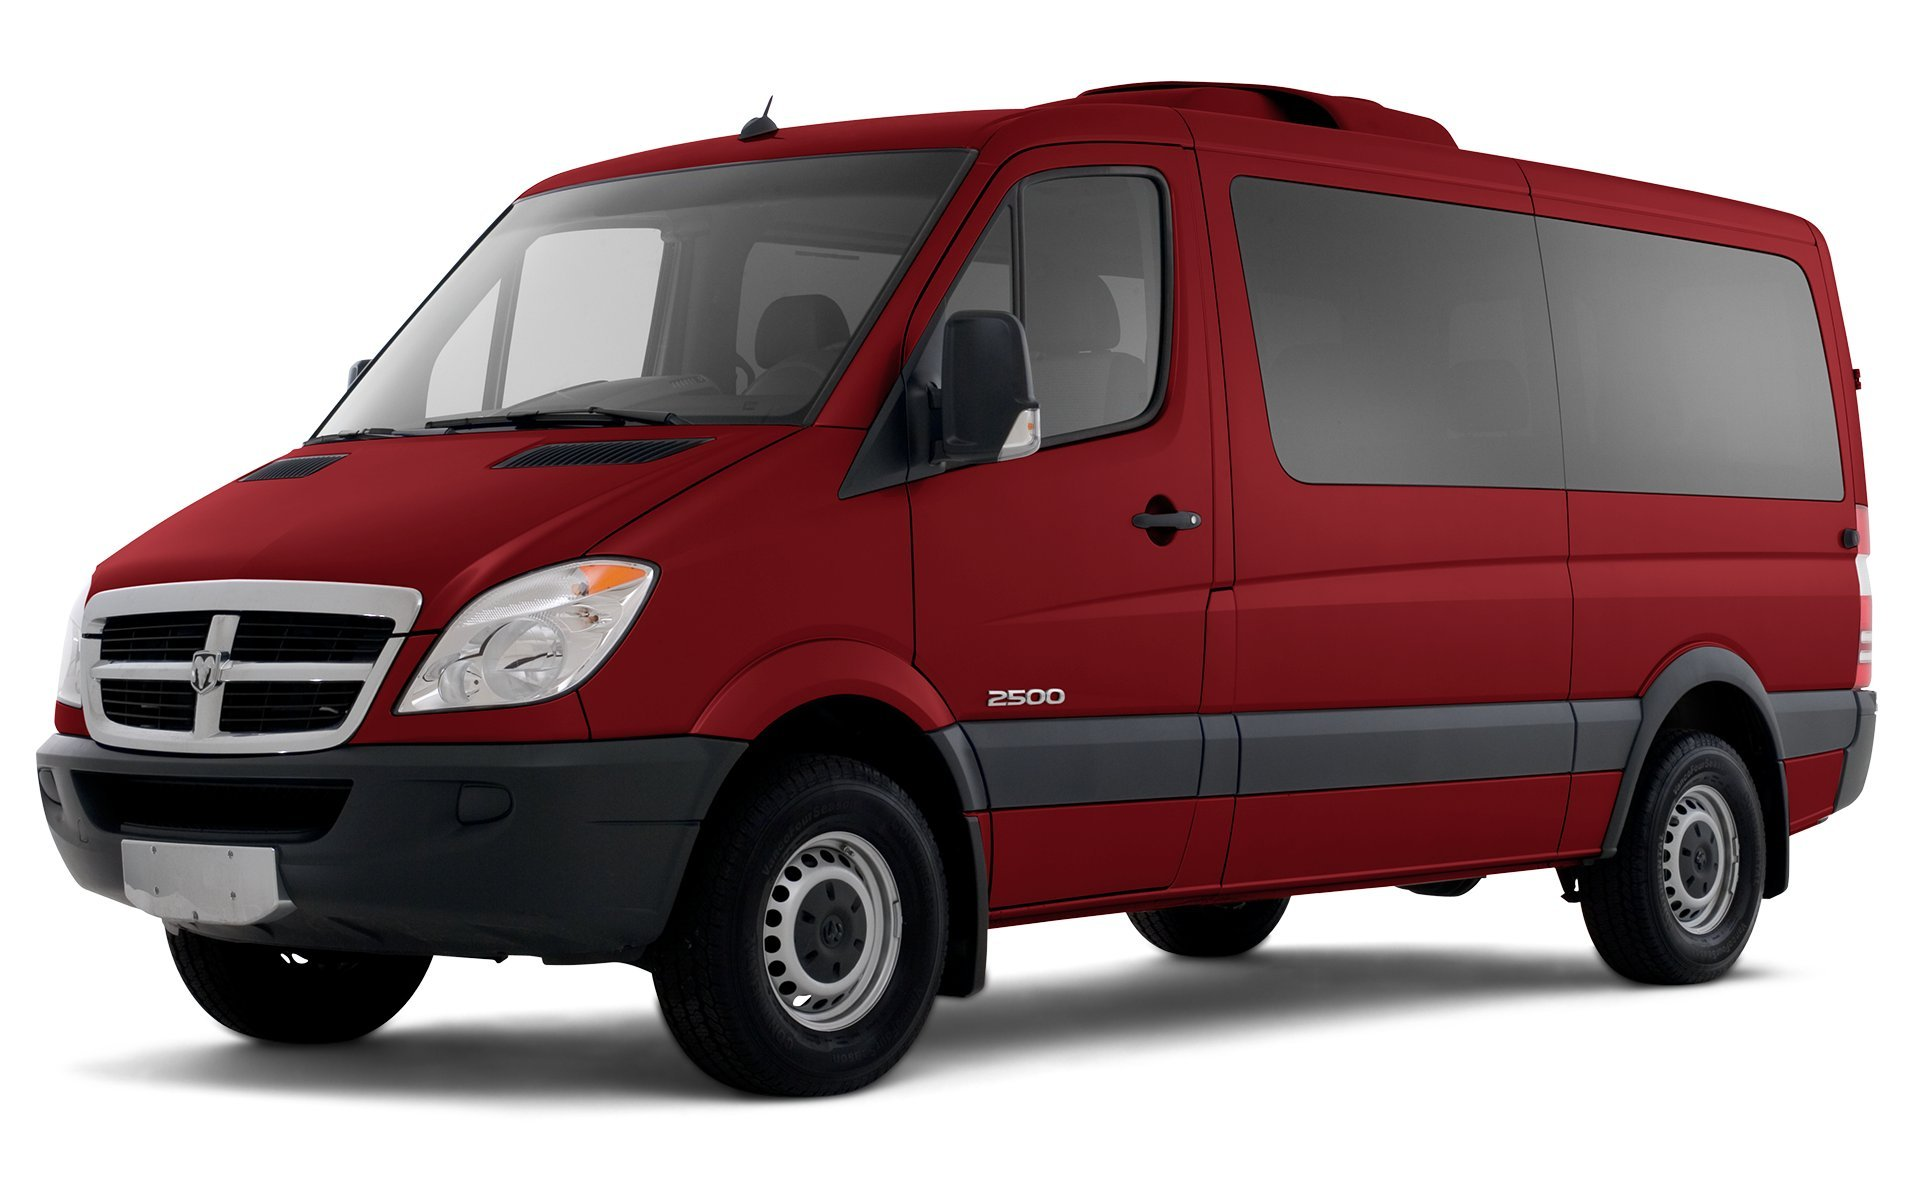 buysellsearch van sprinter trucks ml vehicles mk cargo tx in vans dallas texas bd on sale for dodge box used cars